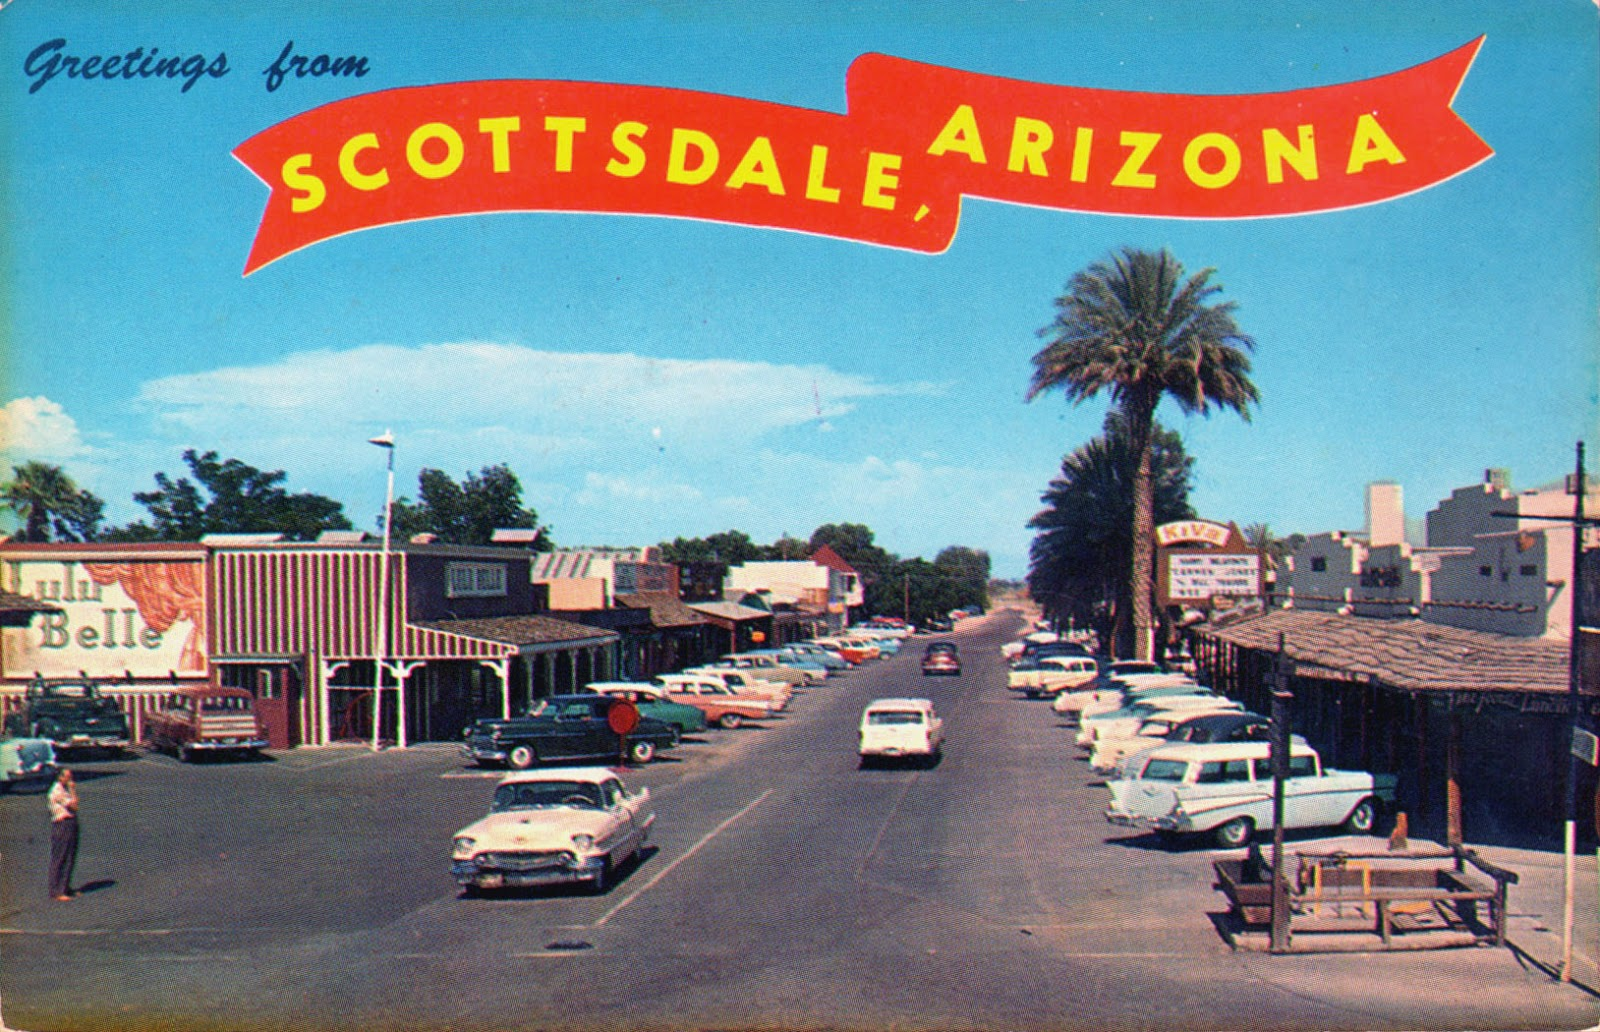 533958099542573532 furthermore 450782243926880419 further Vintage 1950s Get Well Soon Greetings likewise 5419911827 in addition Listing. on 1950s postcards